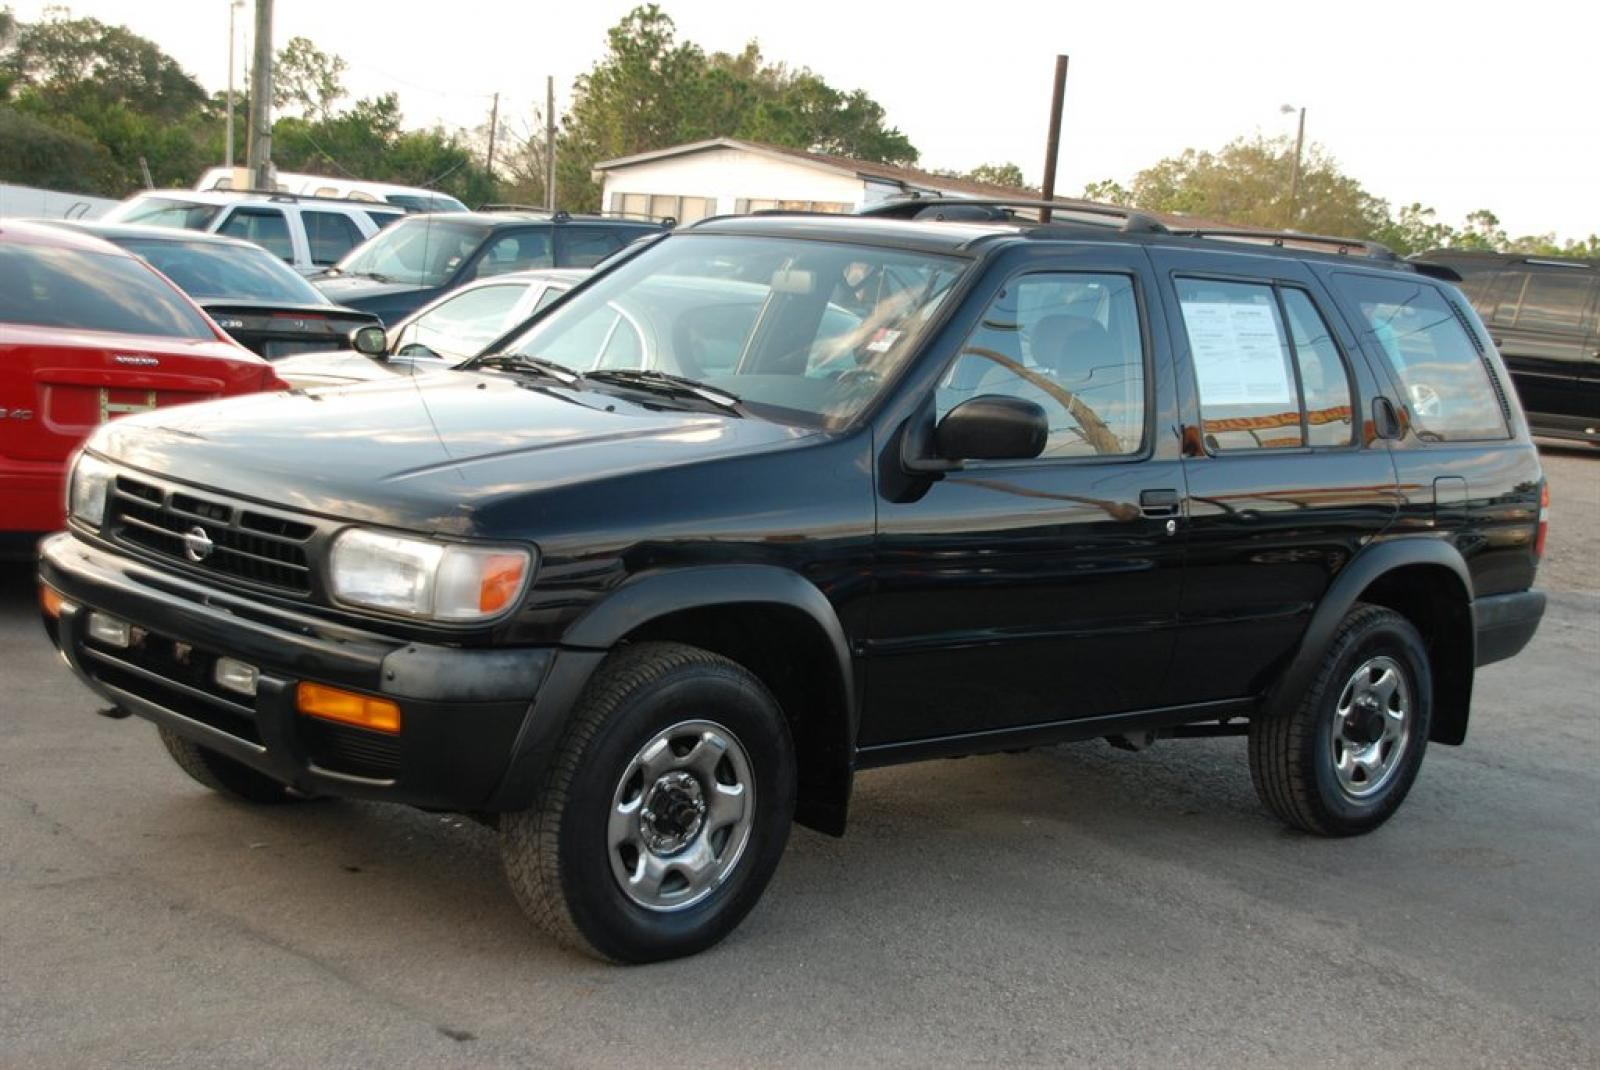 1997 Nissan Pathfinder Information And Photos Zombiedrive